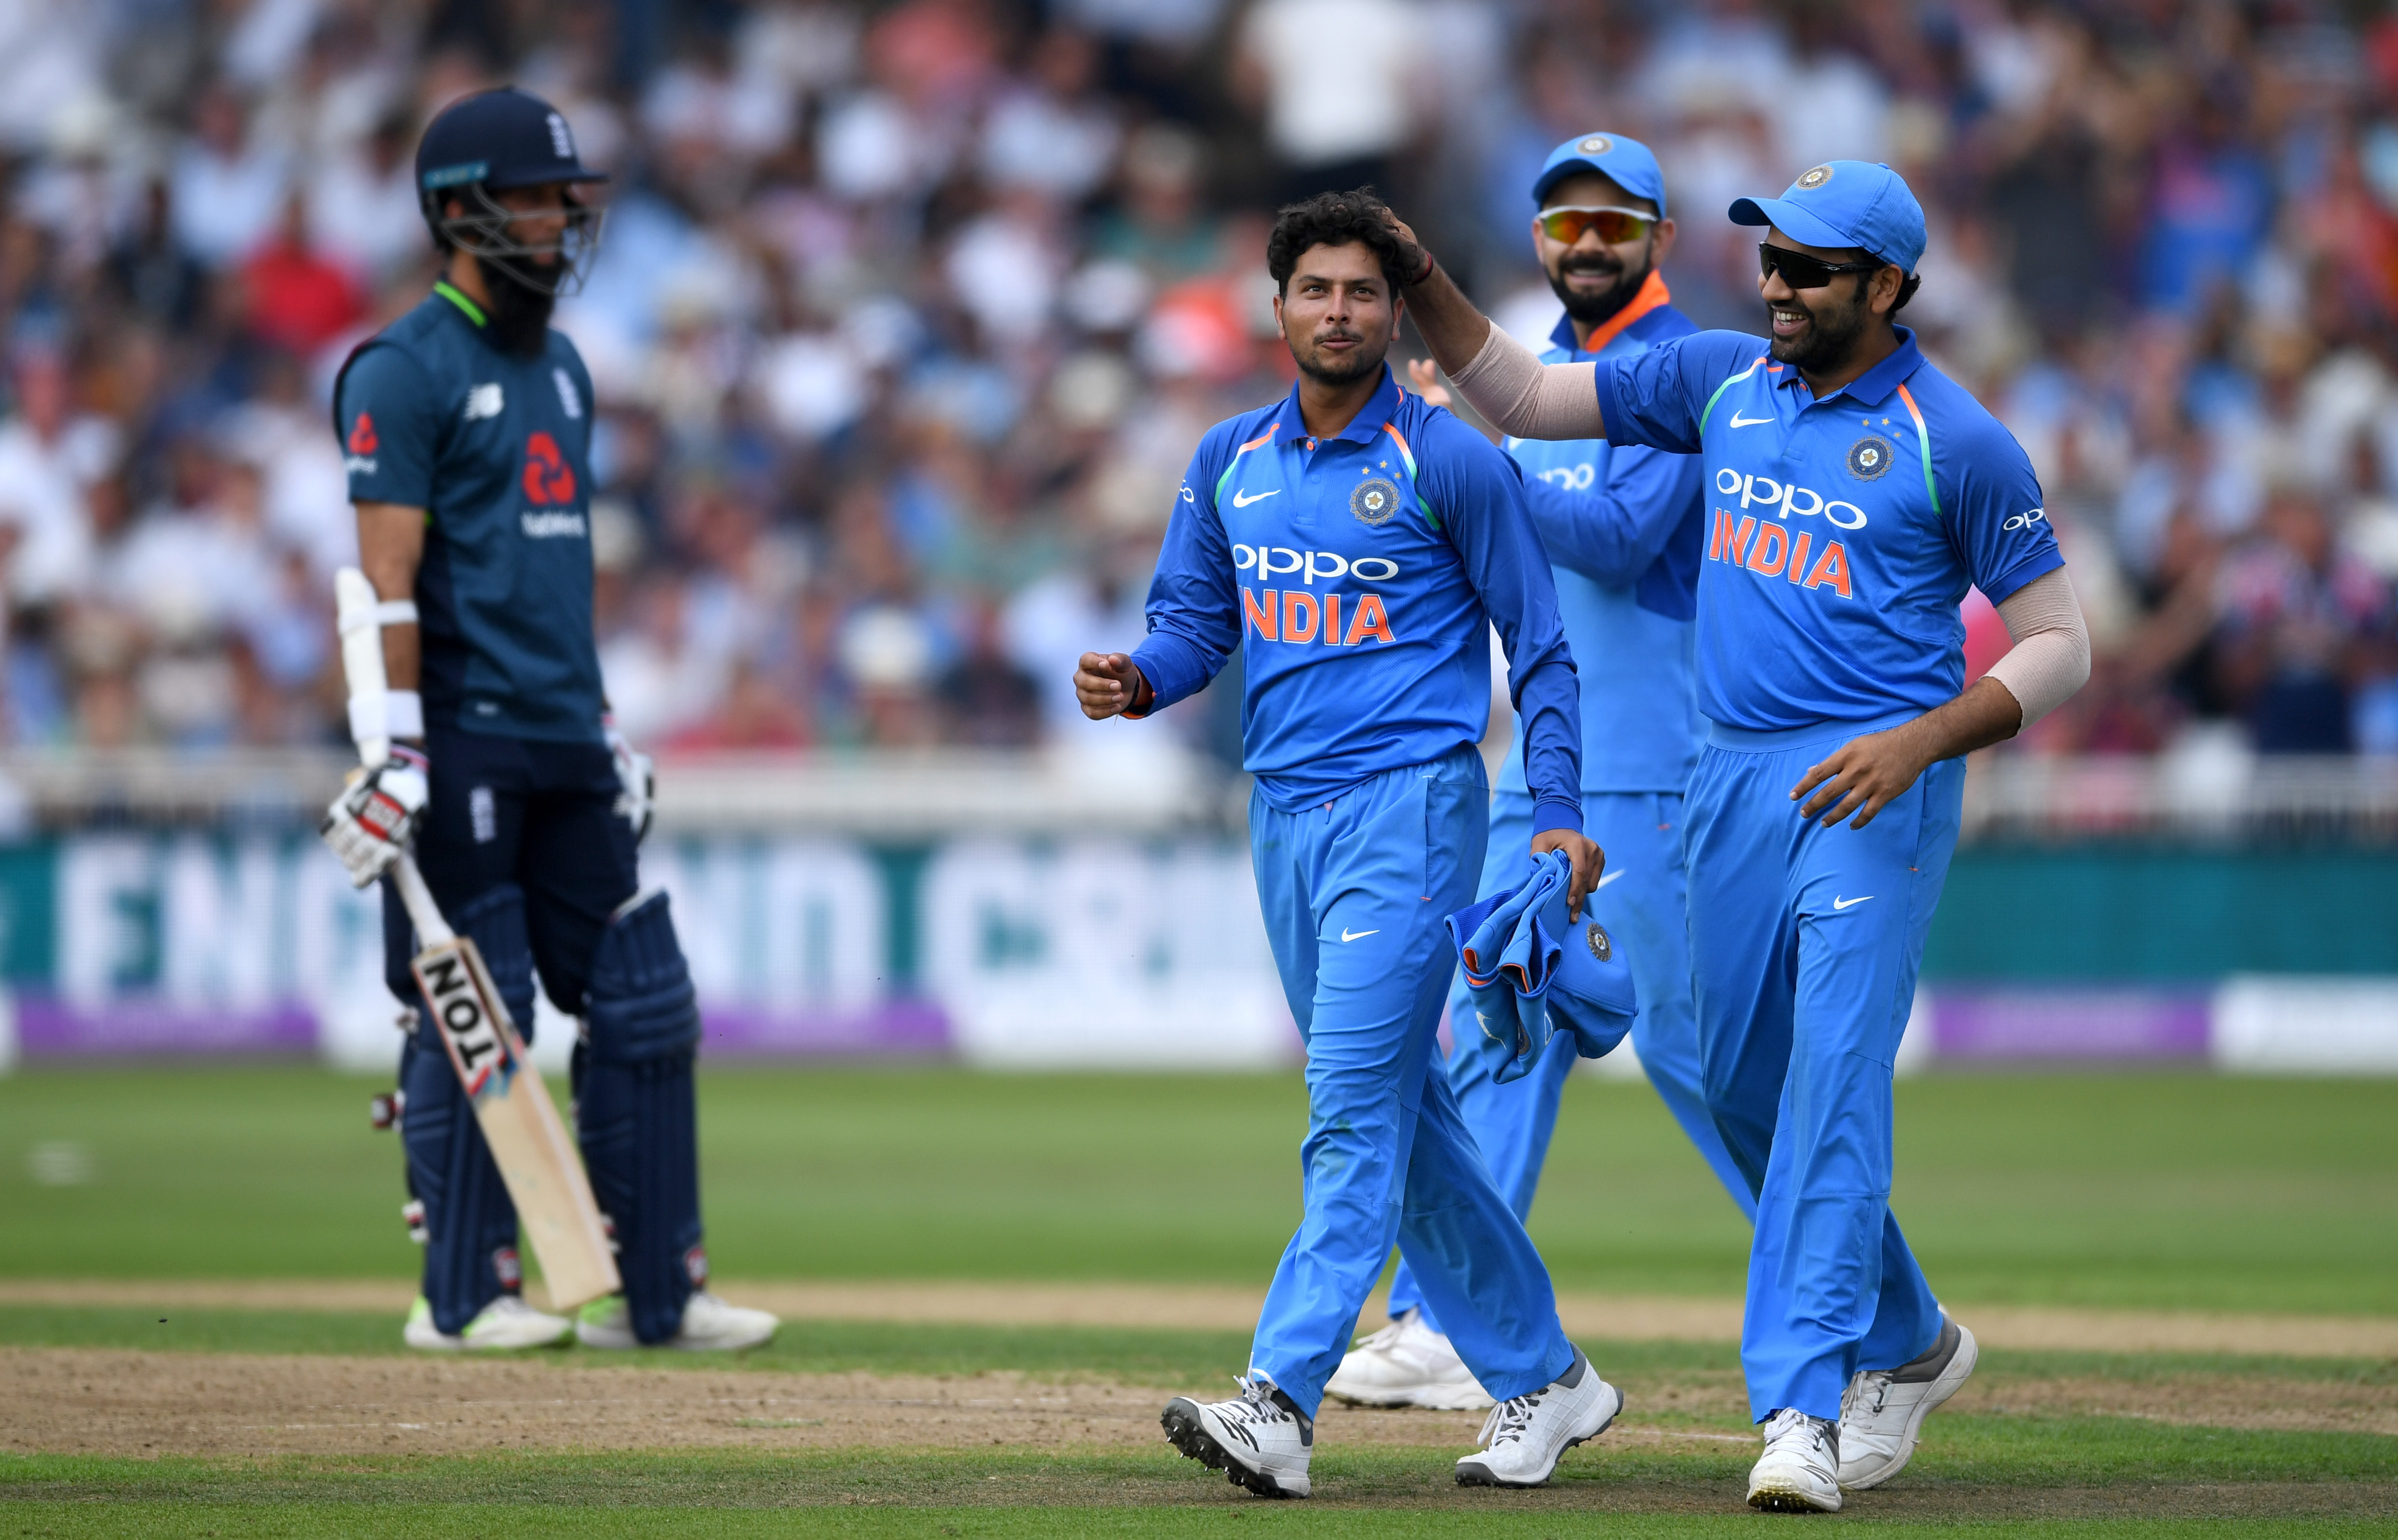 Kuldeep Yadav and Rohit Sharma have been very good in England so far. (Getty)